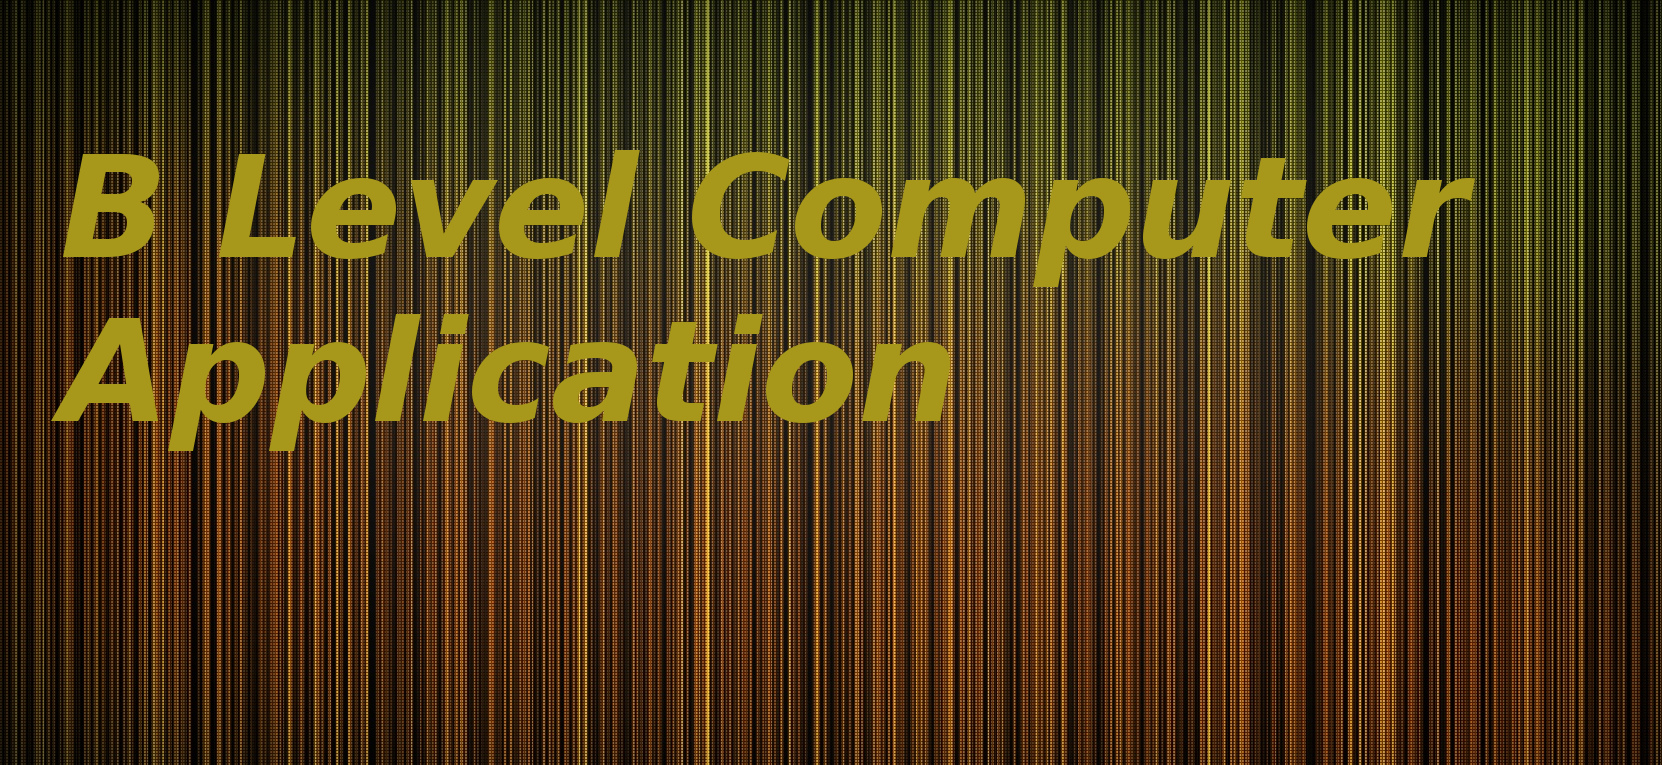 B Level Computer Application